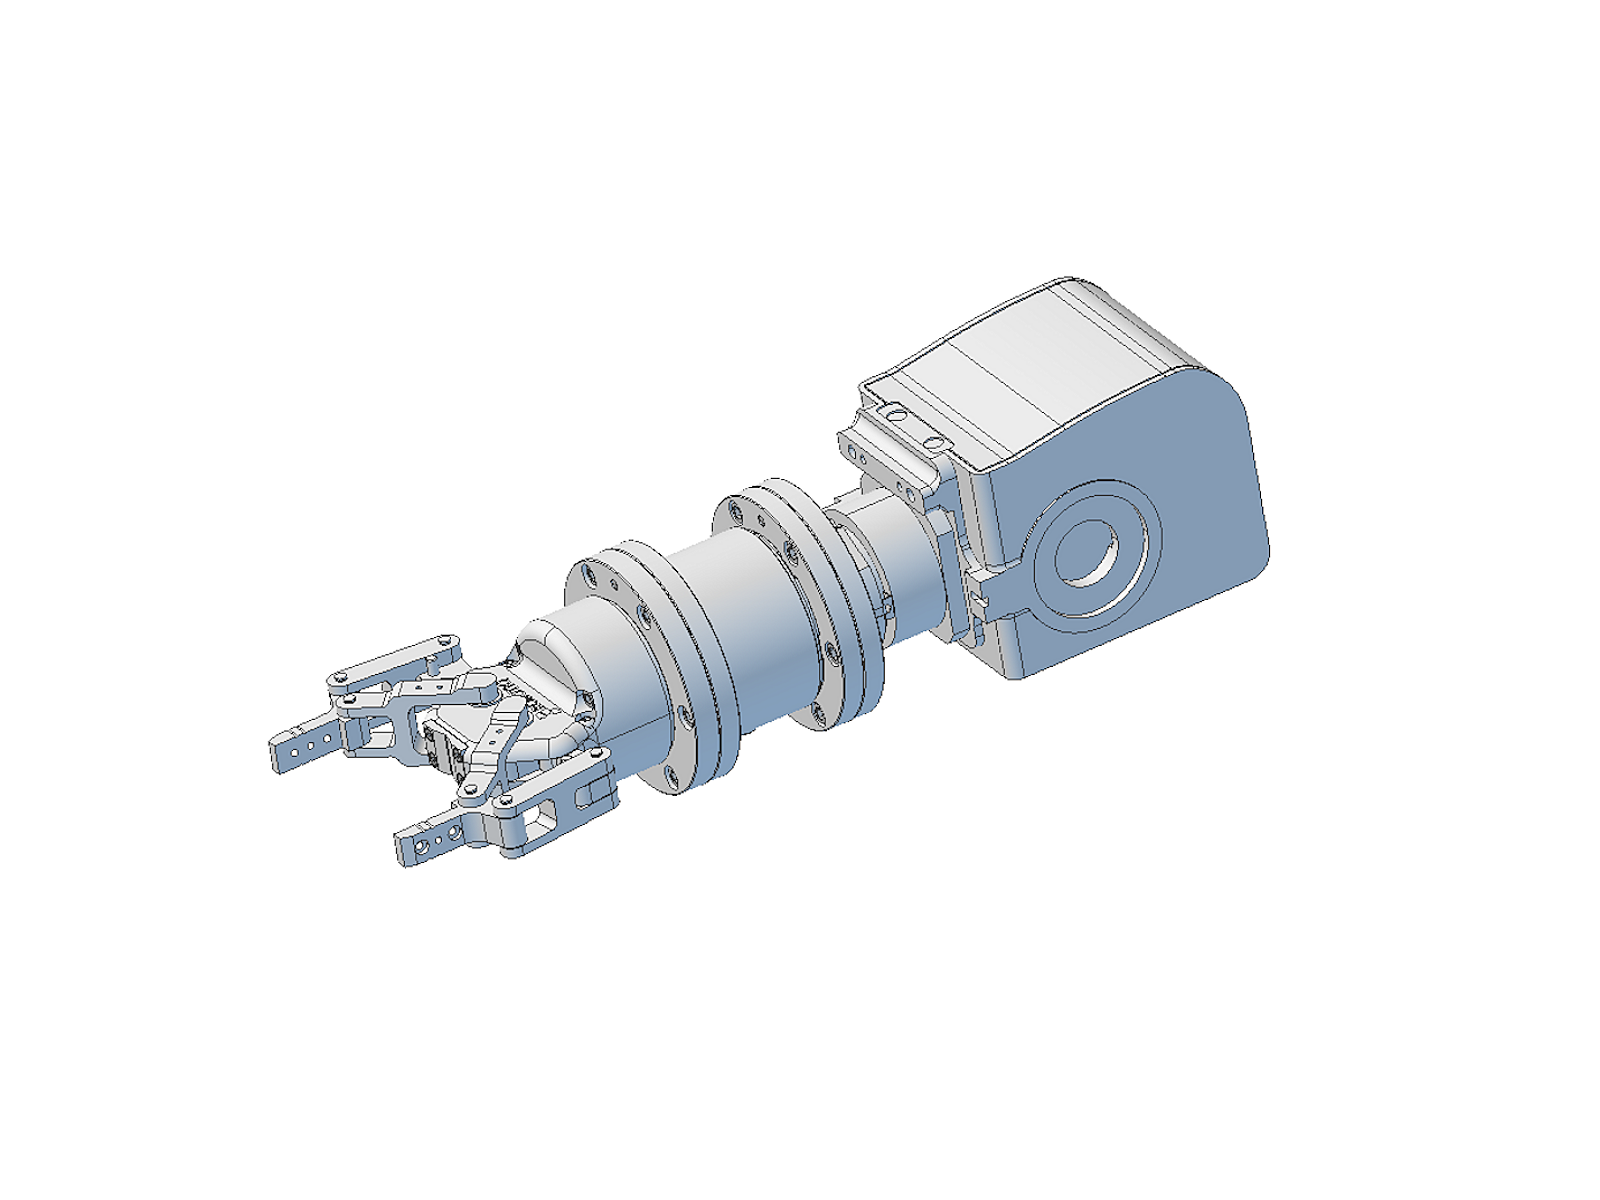 K6D130 - 6 axes - Ø130 x 80 mm - 6 axis force/torque transducer - 1kN/200Nm to 15kN/1,2kNm